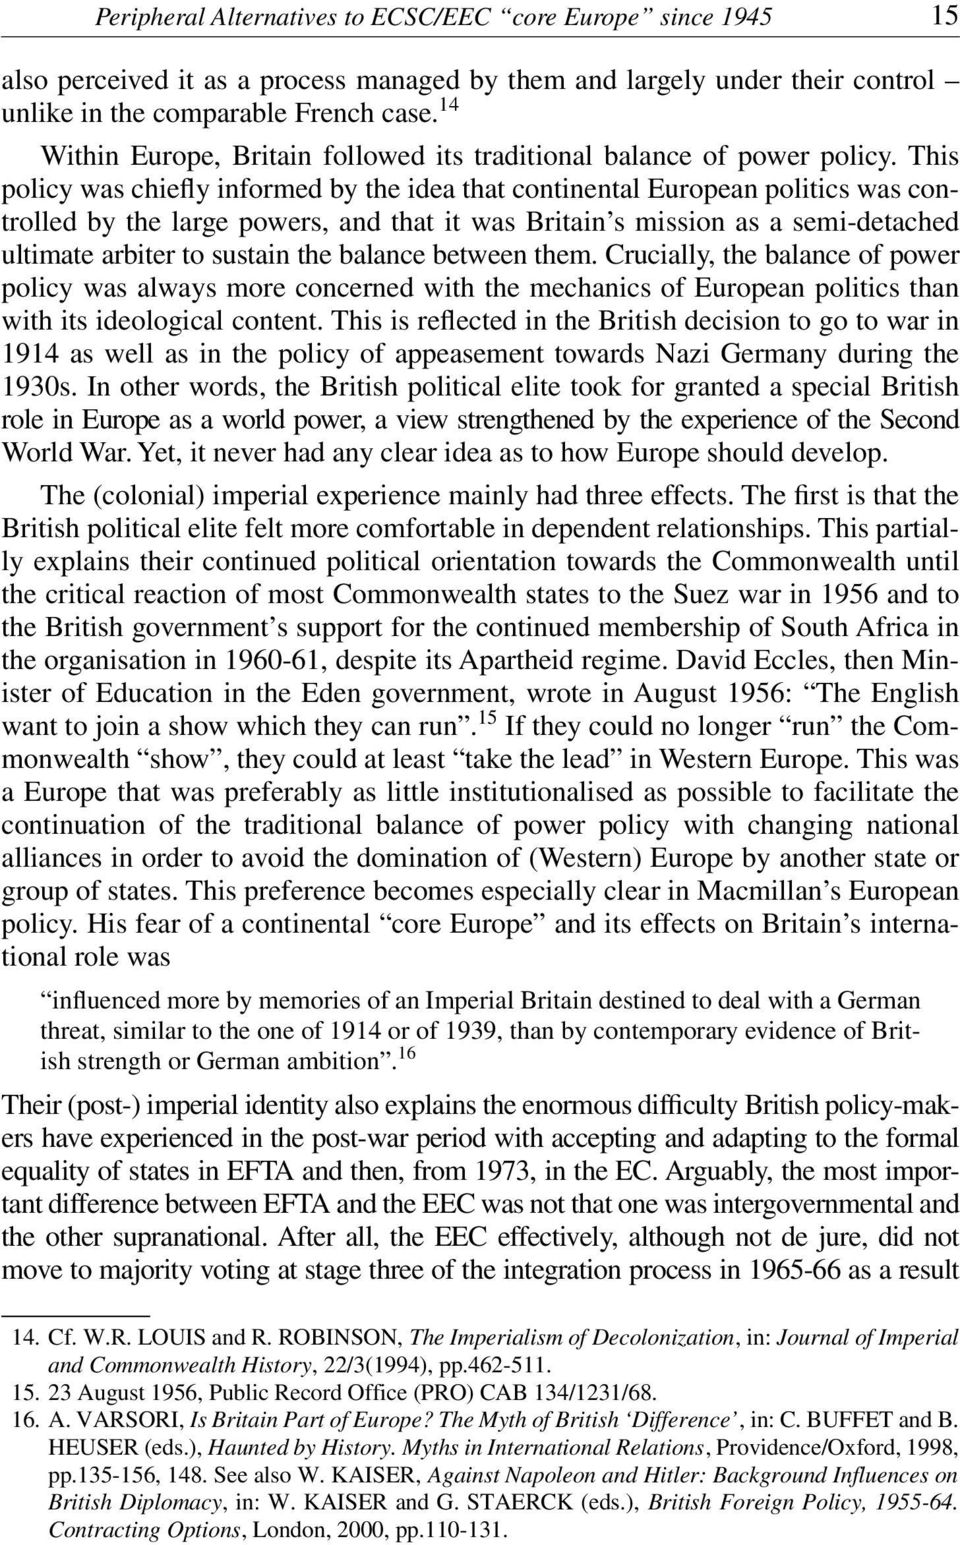 This policy was chiefly informed by the idea that continental European politics was controlled by the large powers, and that it was Britain s mission as a semi-detached ultimate arbiter to sustain